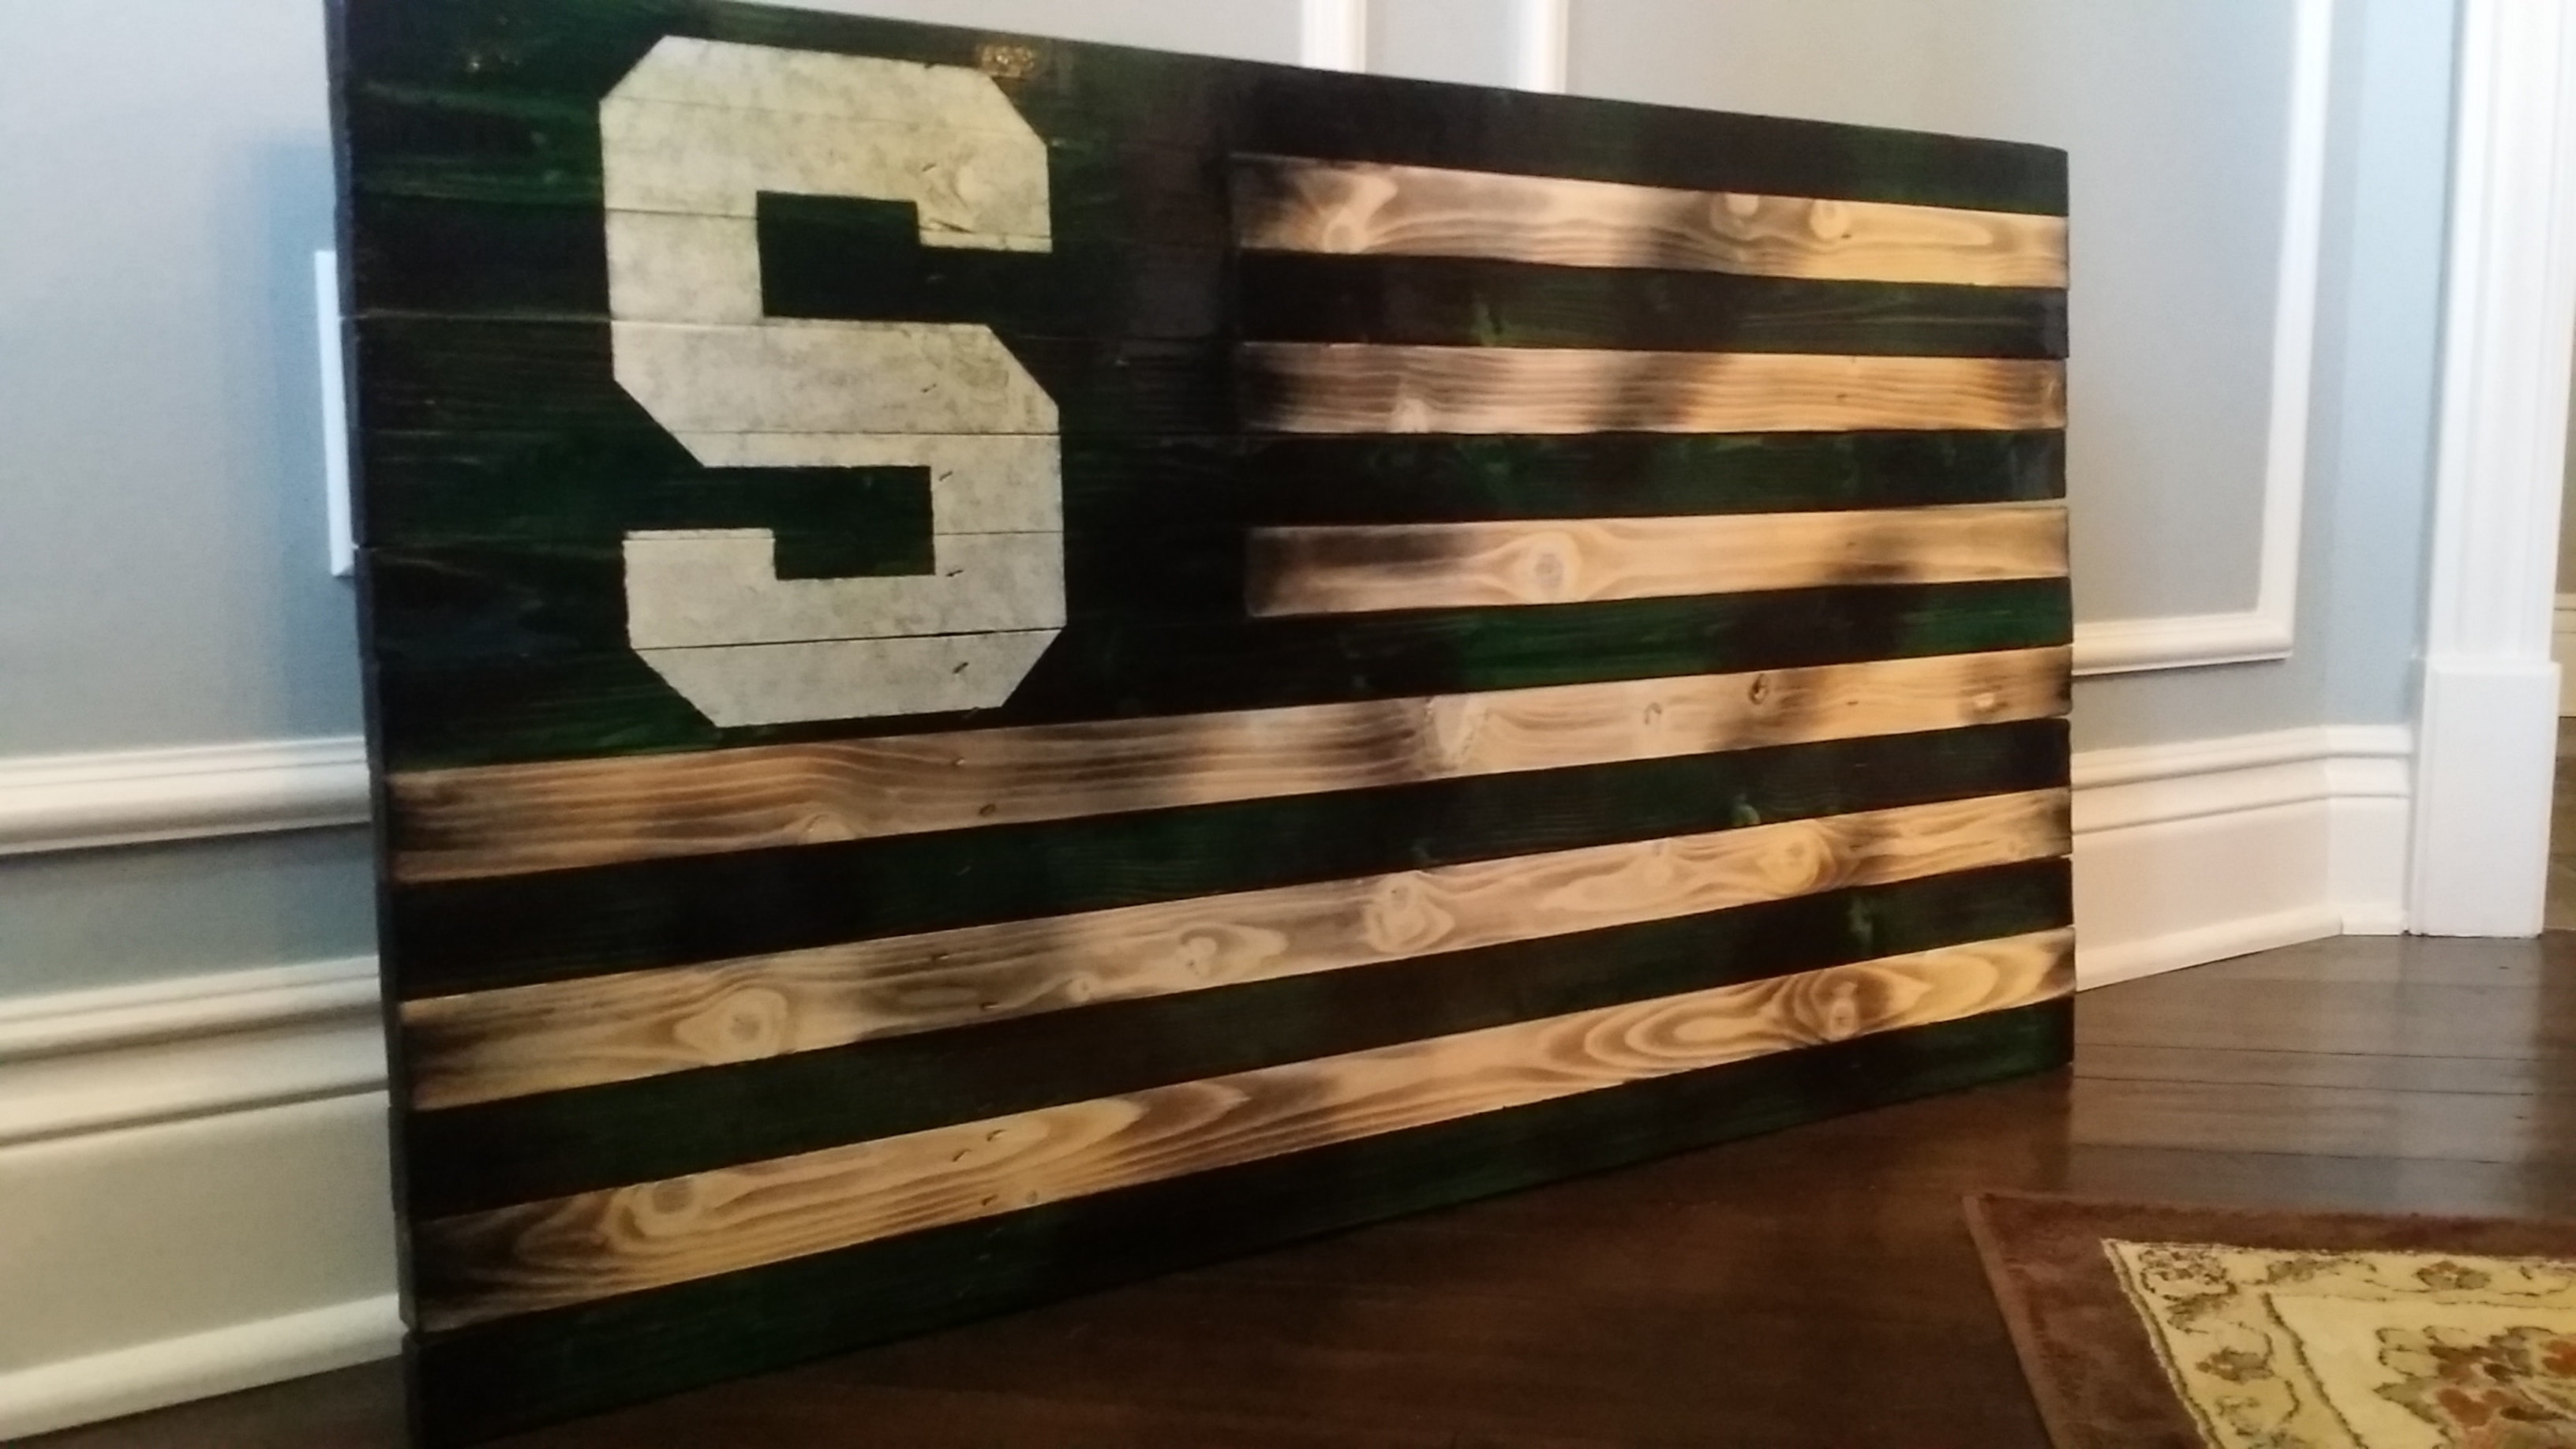 Handmade In Usa, Vintage, Rustic And Distressed Wooden U.s. American Throughout Most Recent Michigan Wall Art (Gallery 19 of 20)